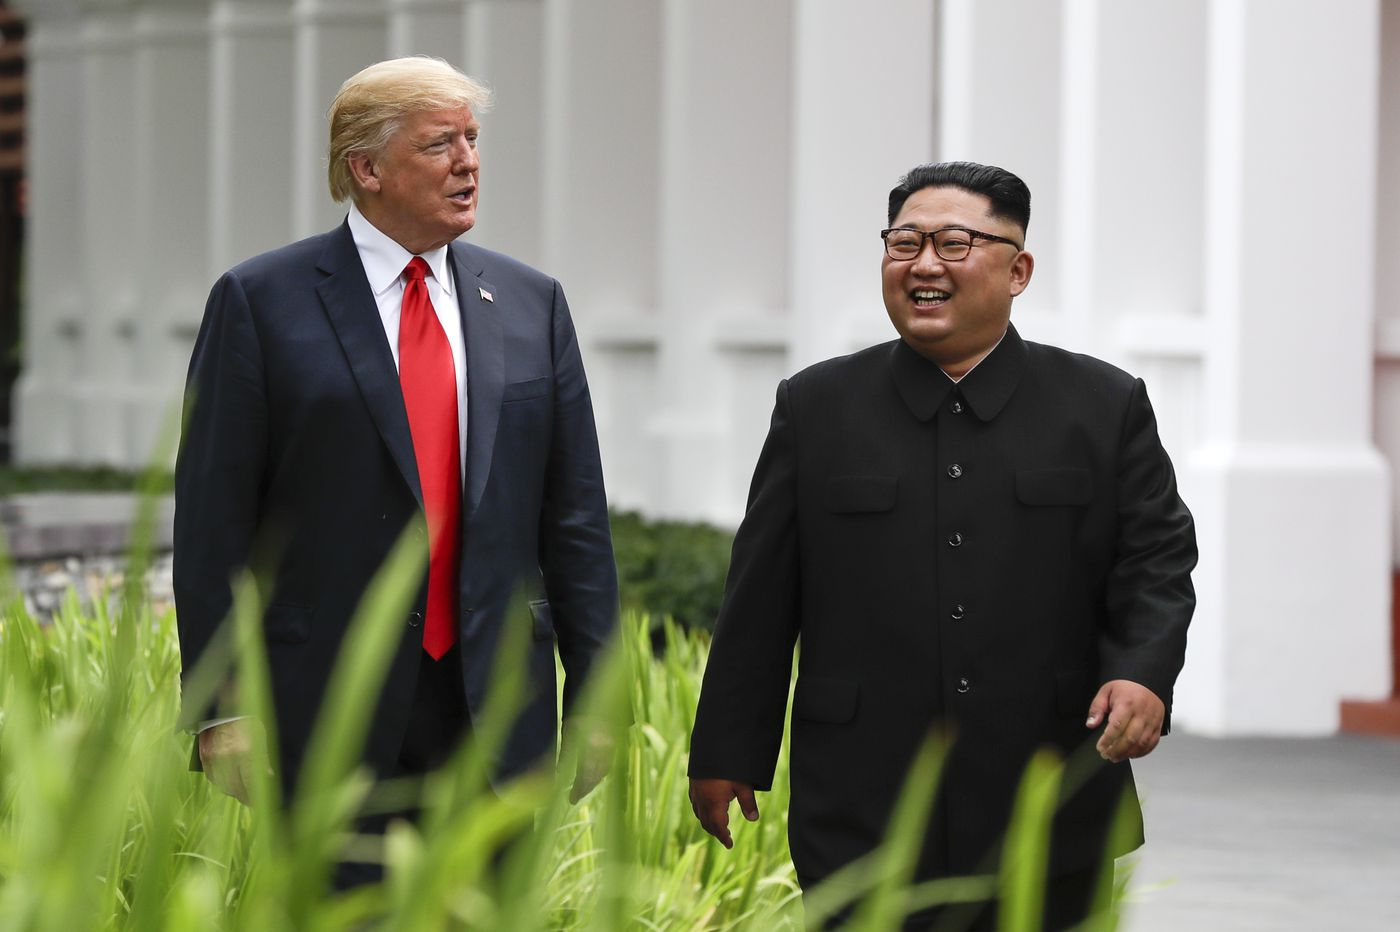 At the Singapore summit, President Trump got played | Trudy Rubin